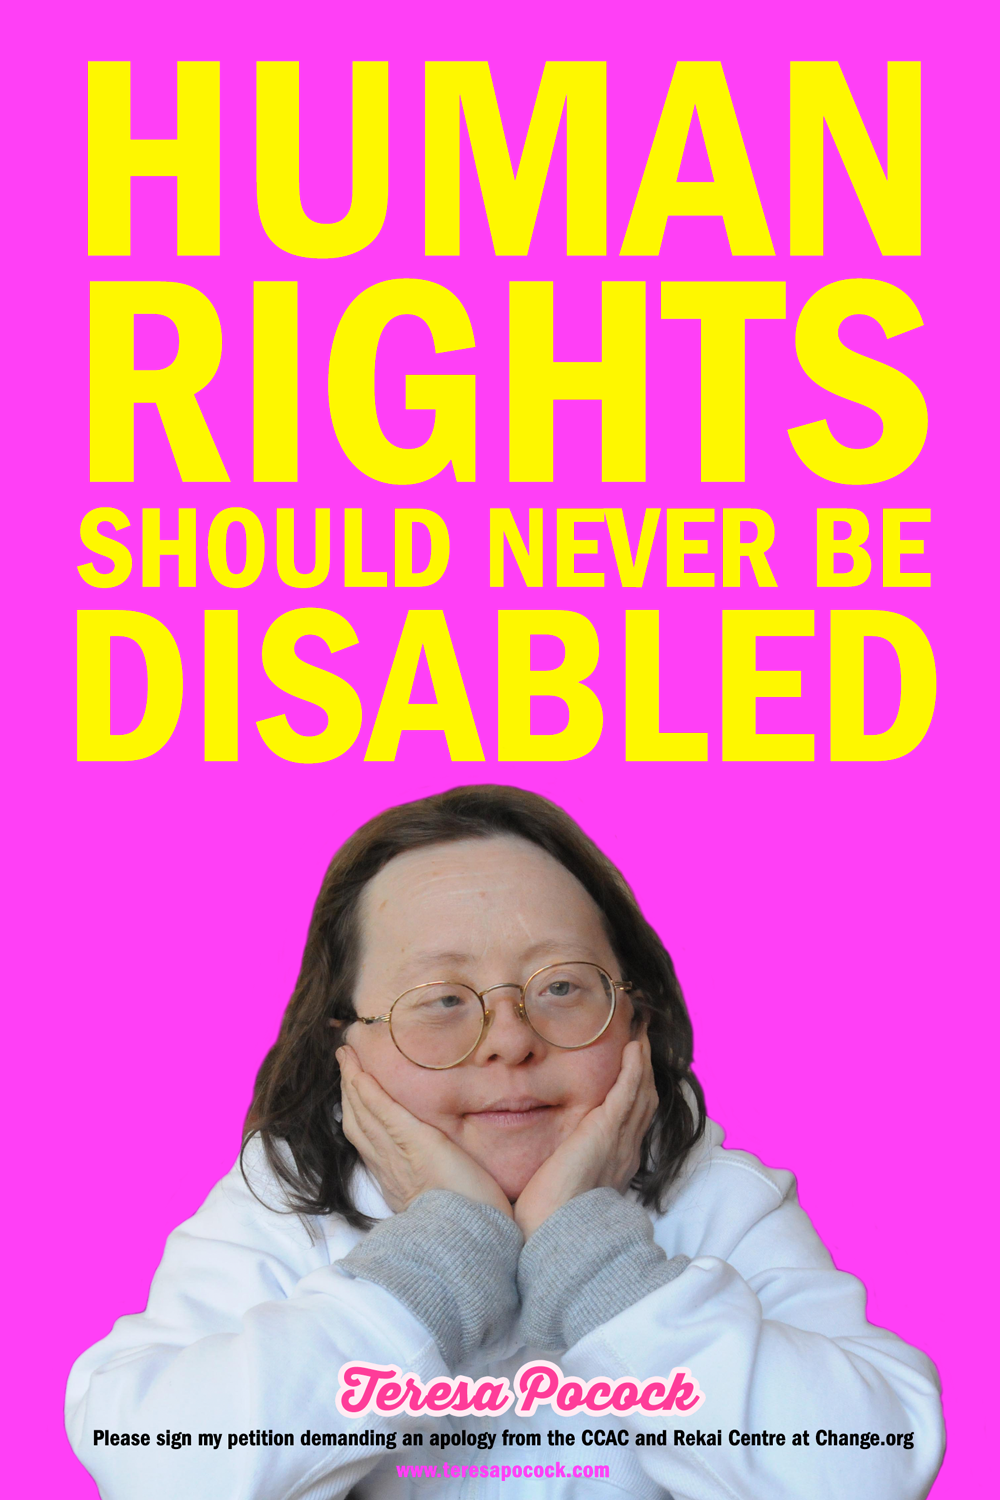 Human Rights Should Never Be Disabled